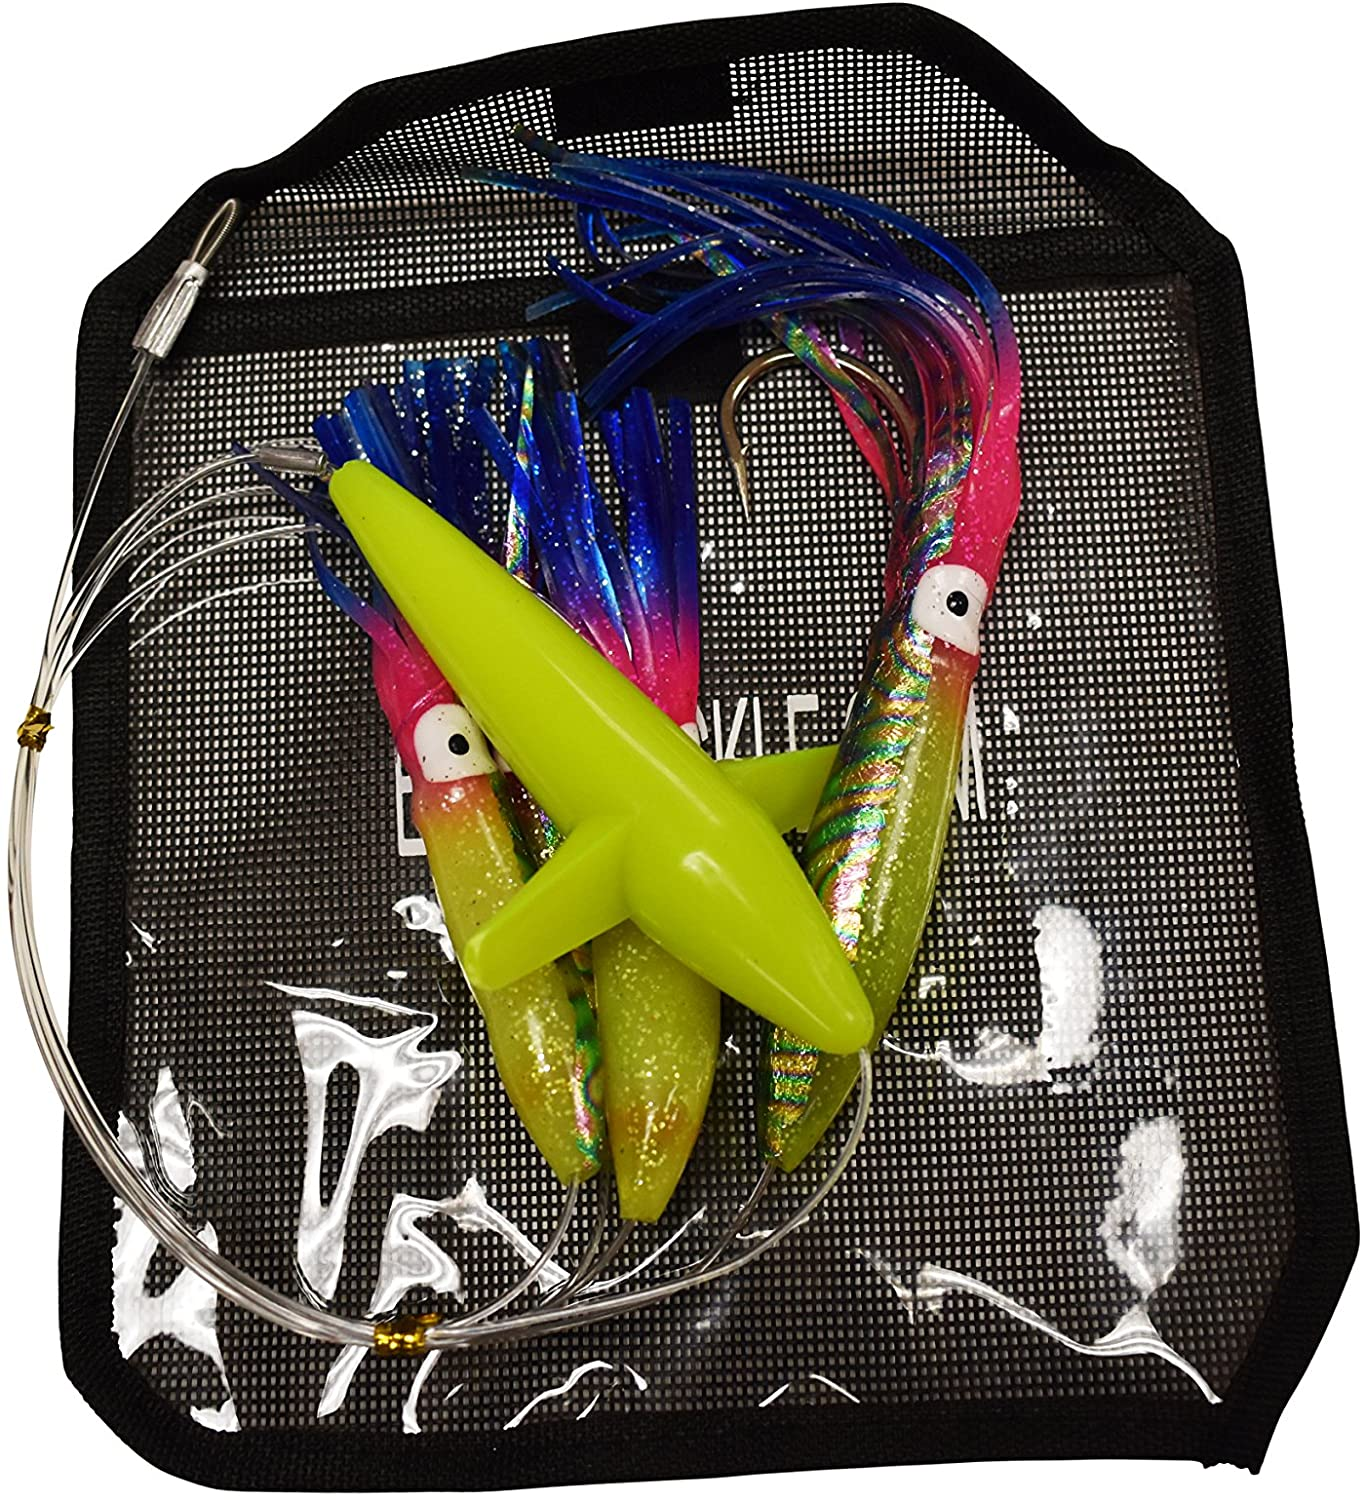 EAT MY TACKLE Daisy Chain Rigged Rainbow Squid and Bird Fishing Lure